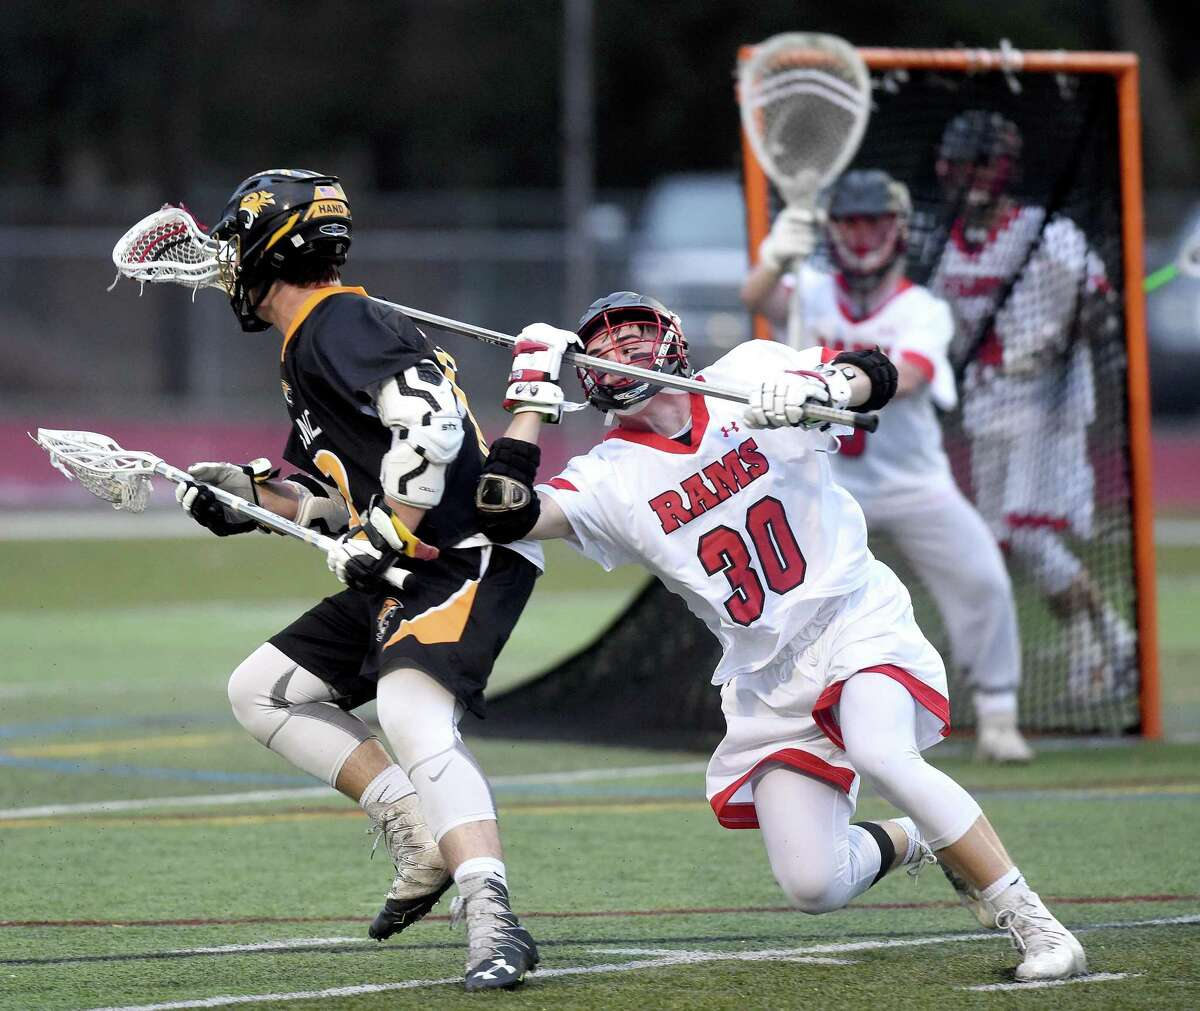 Hand's Jack Flanagan, left, is defendied by Cheshire's Ethan Bronson on Monday.